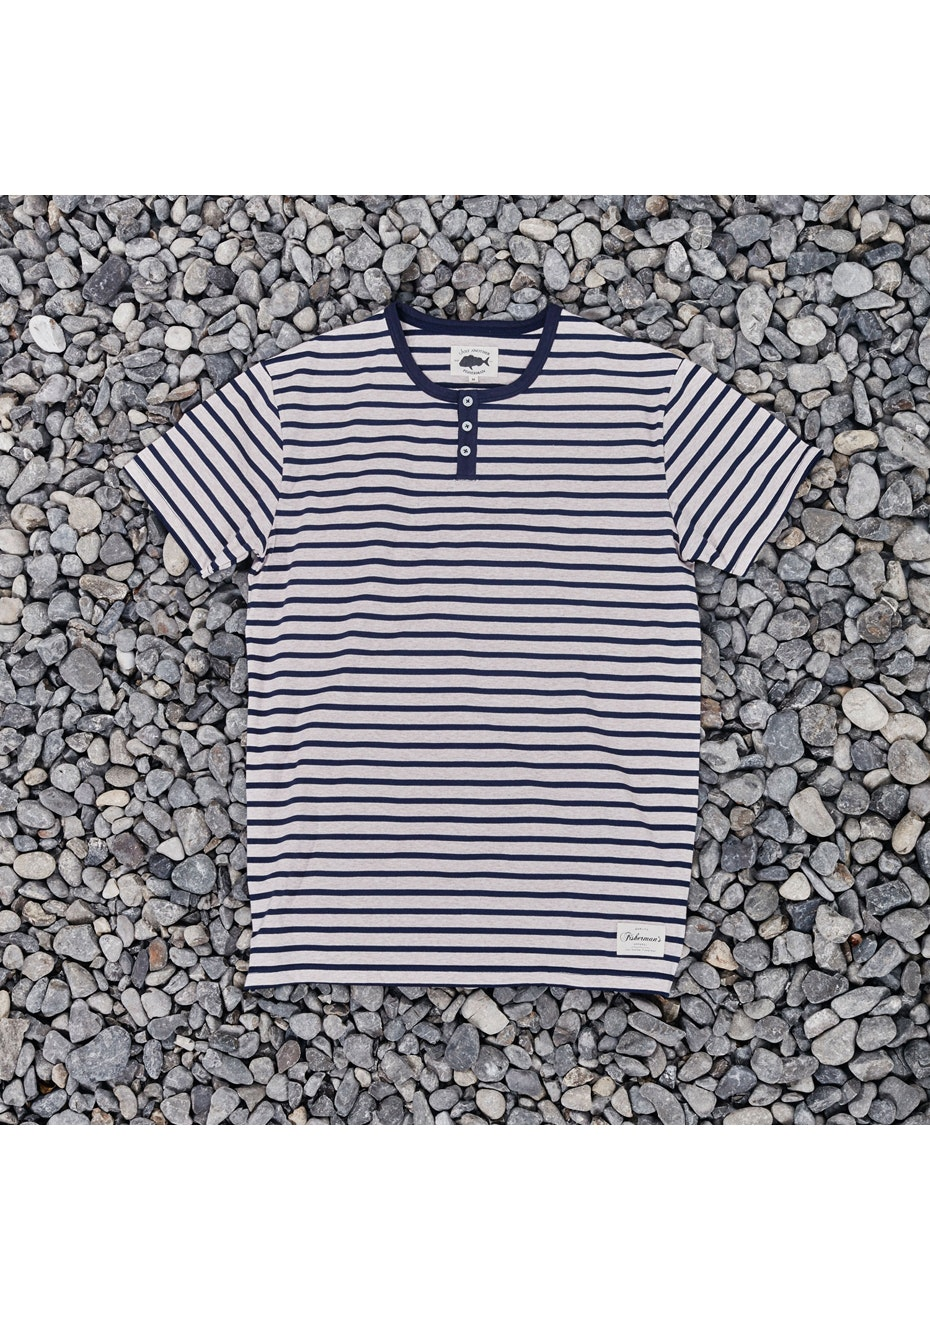 Just Another Fisherman - Mariner Tee- Oatmeal/Navy